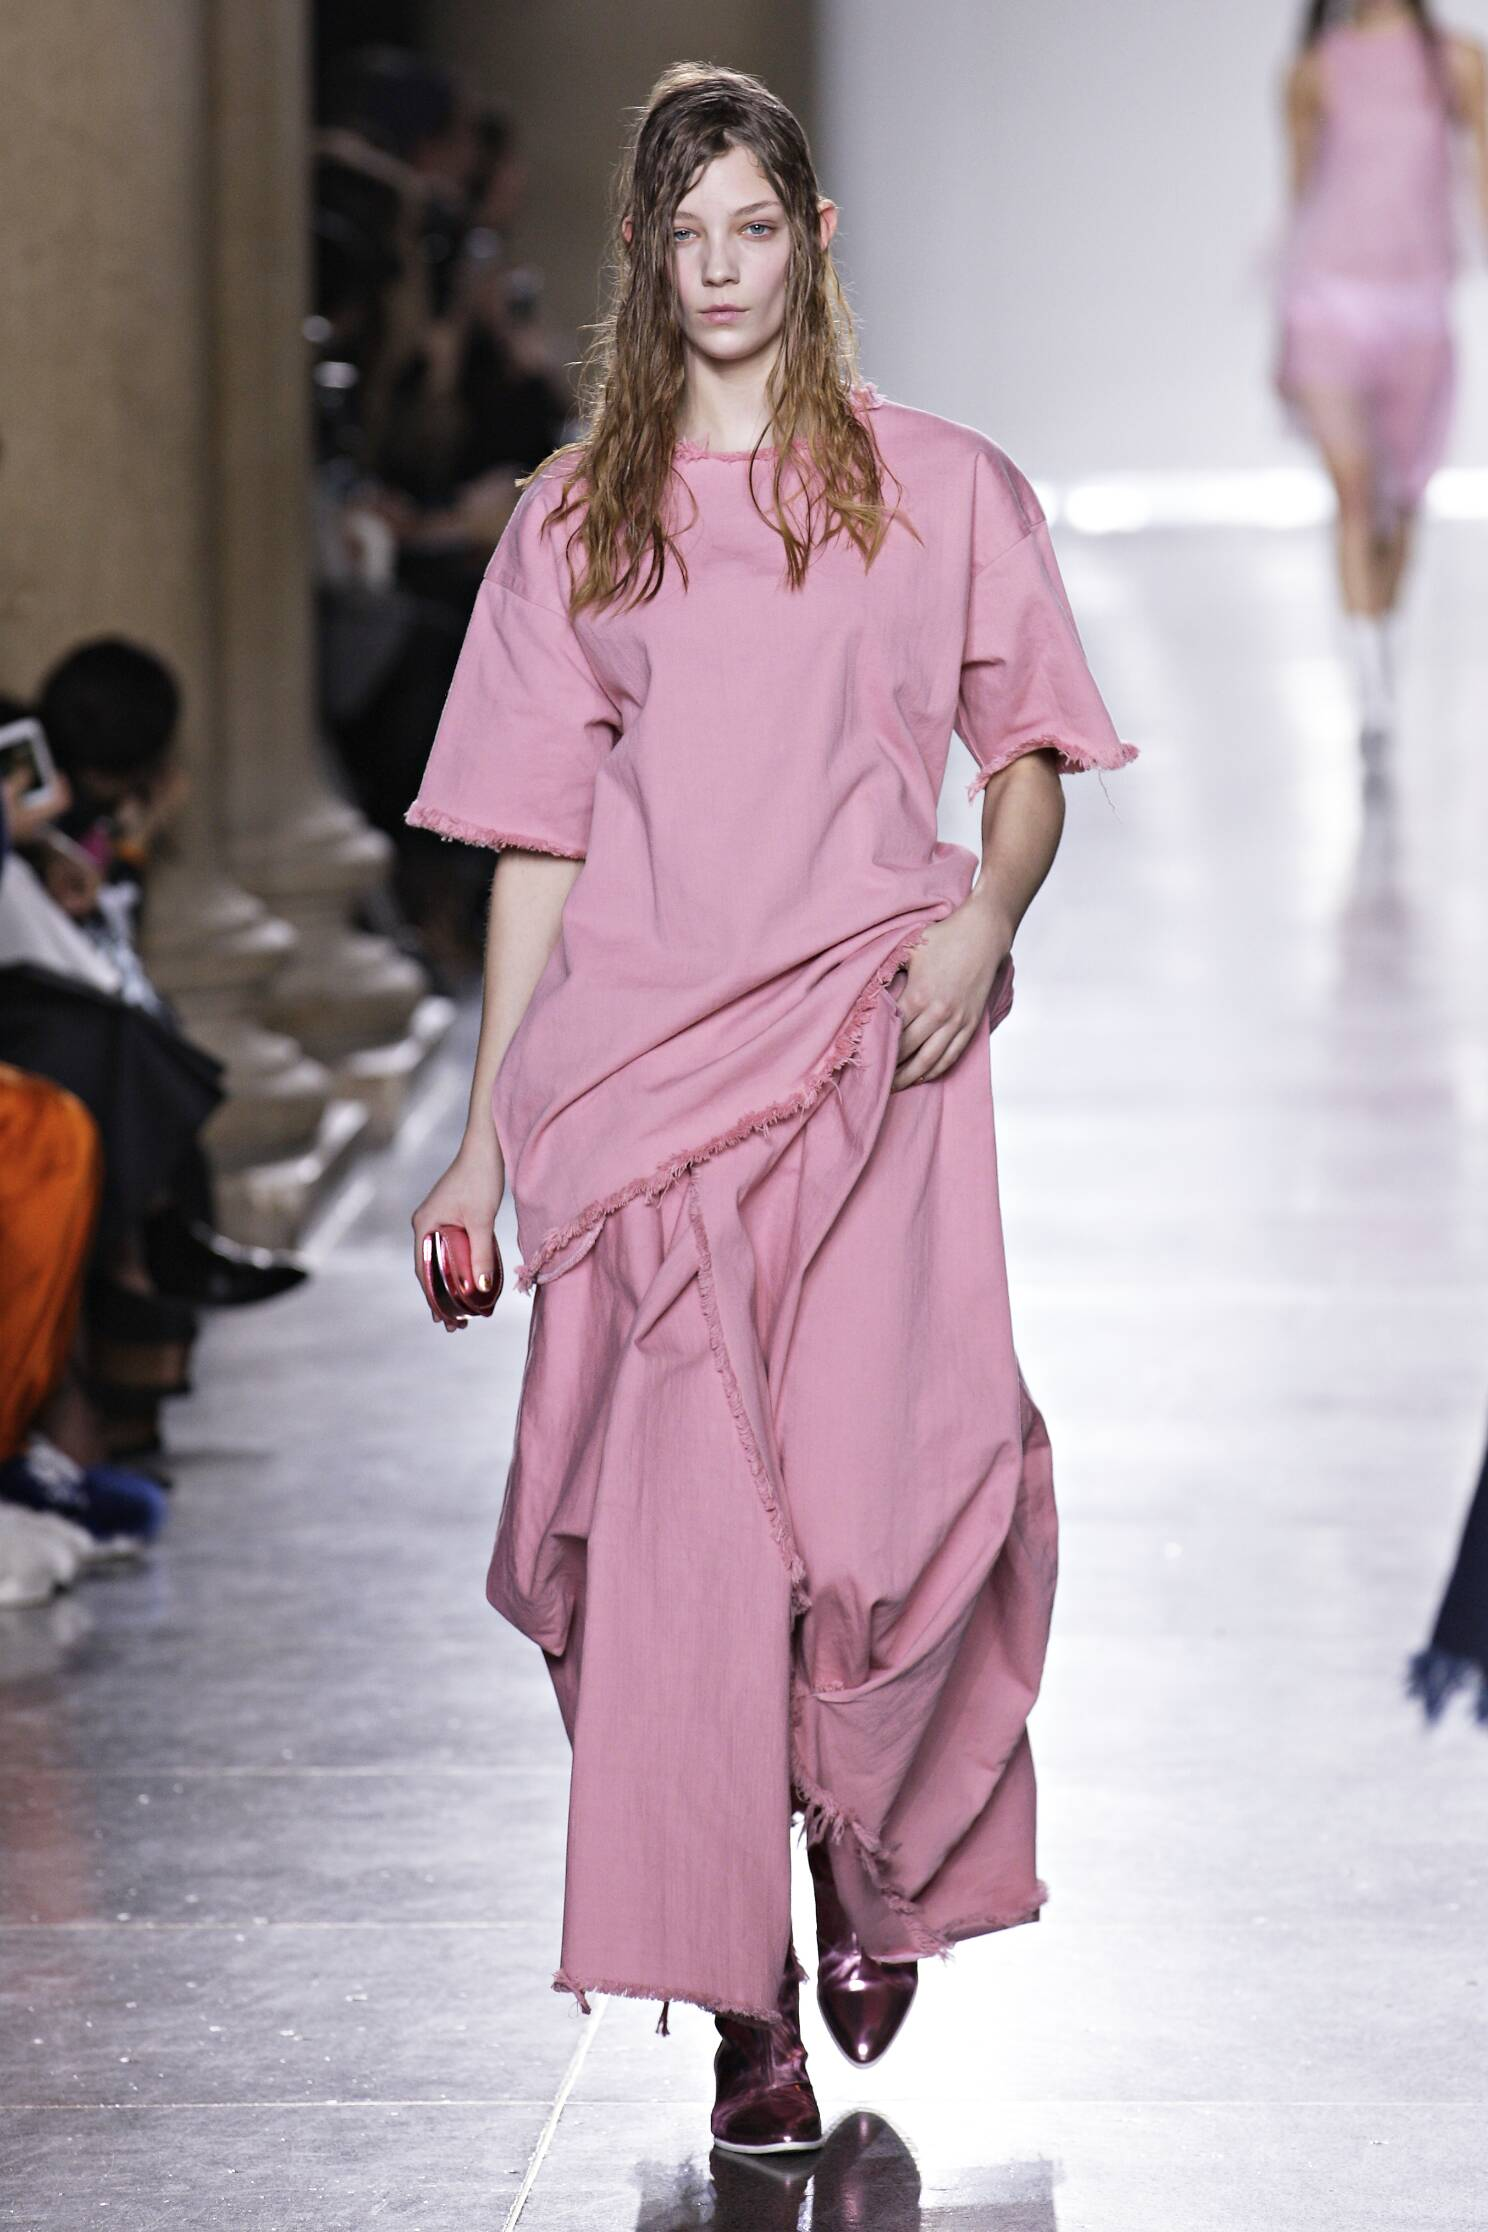 Marques Almeida Fall Winter 2015 16 Womenswear Collection London Fashion Week Fashion Show